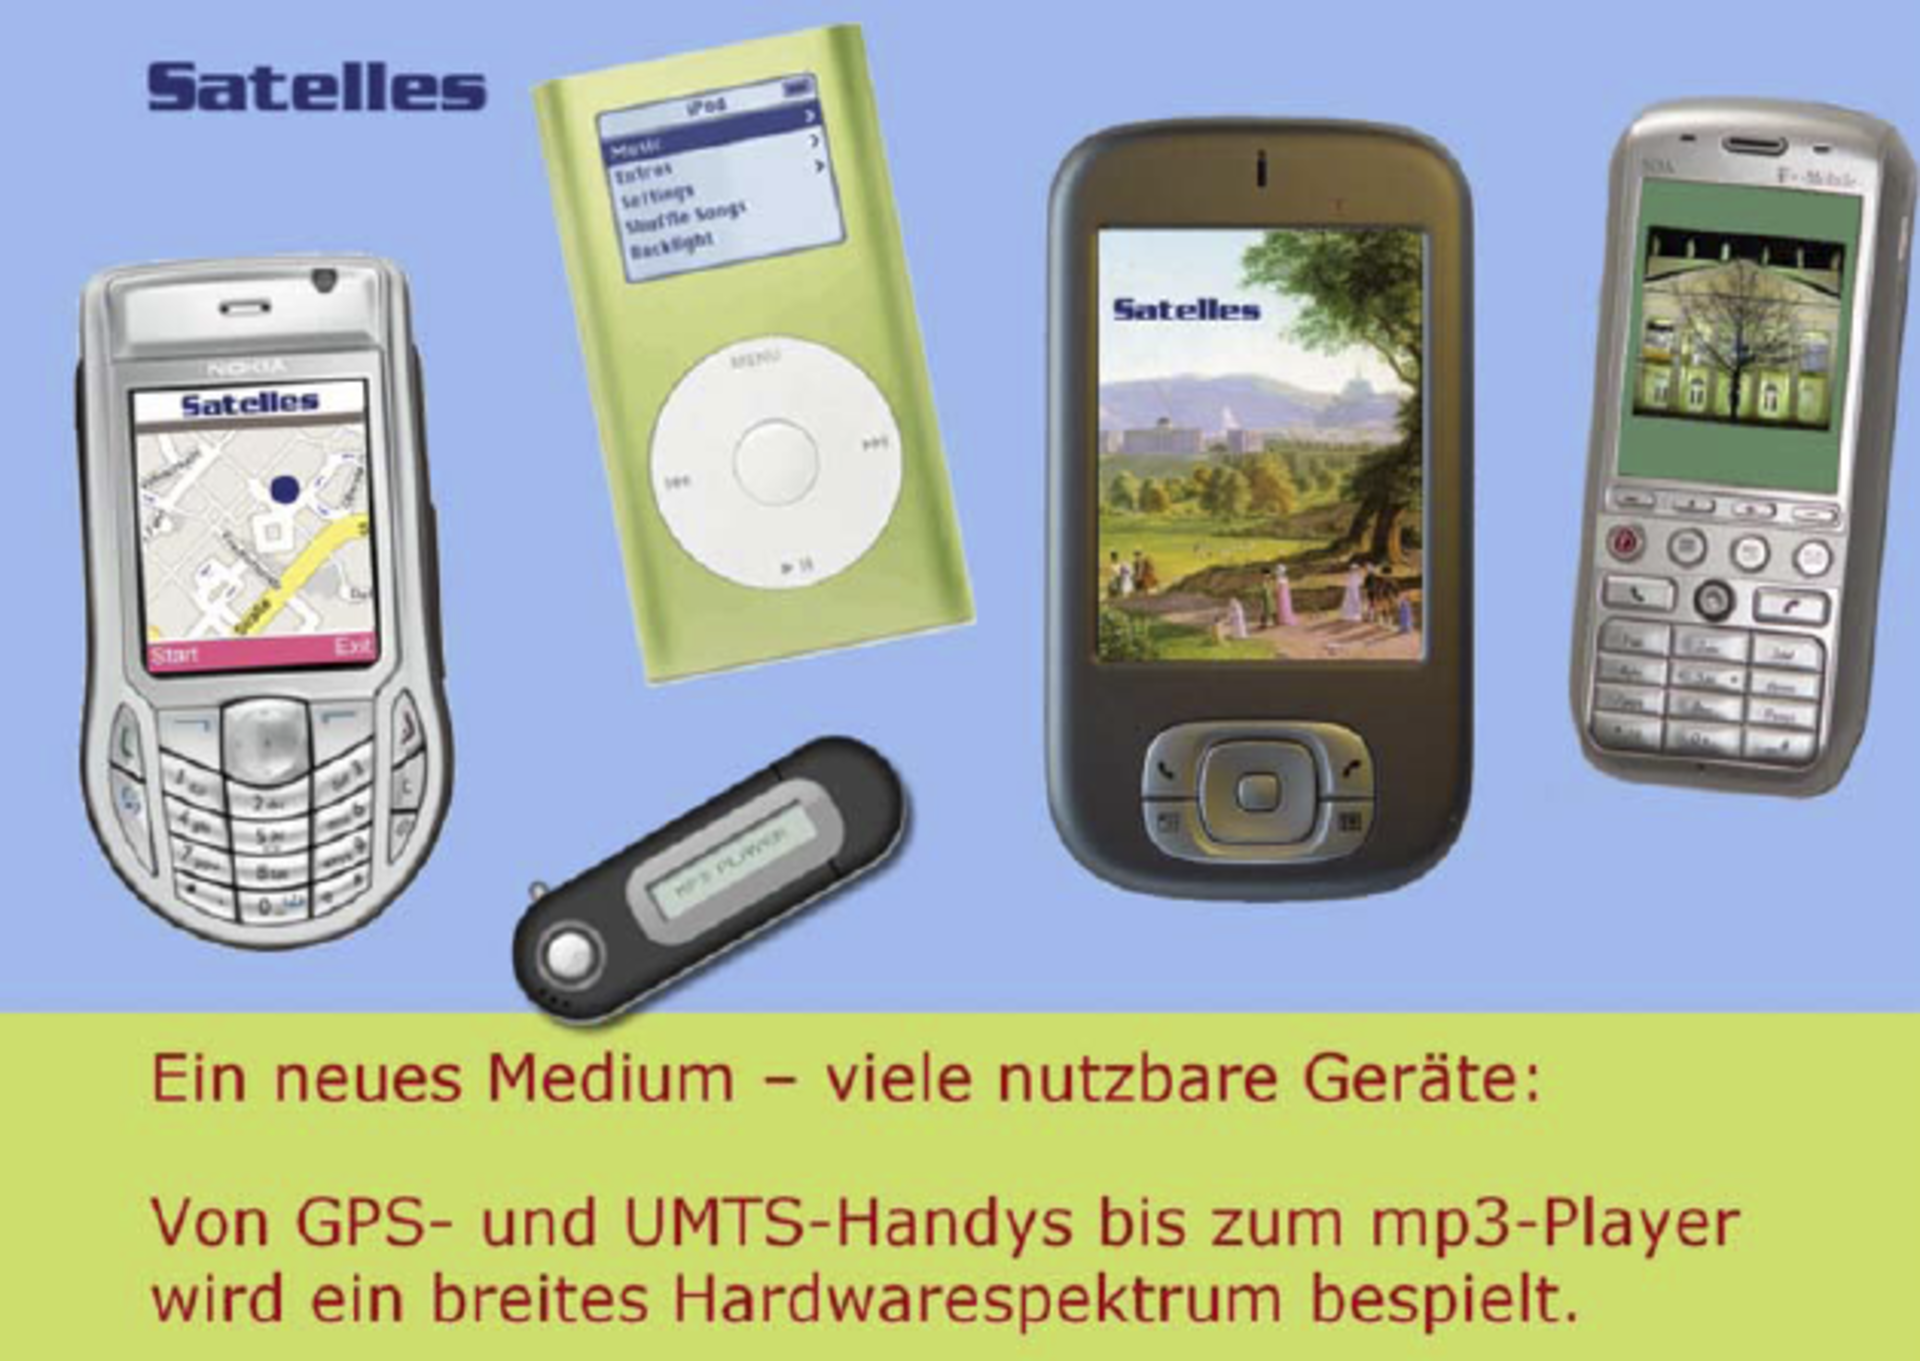 Satelles mobile travel guide